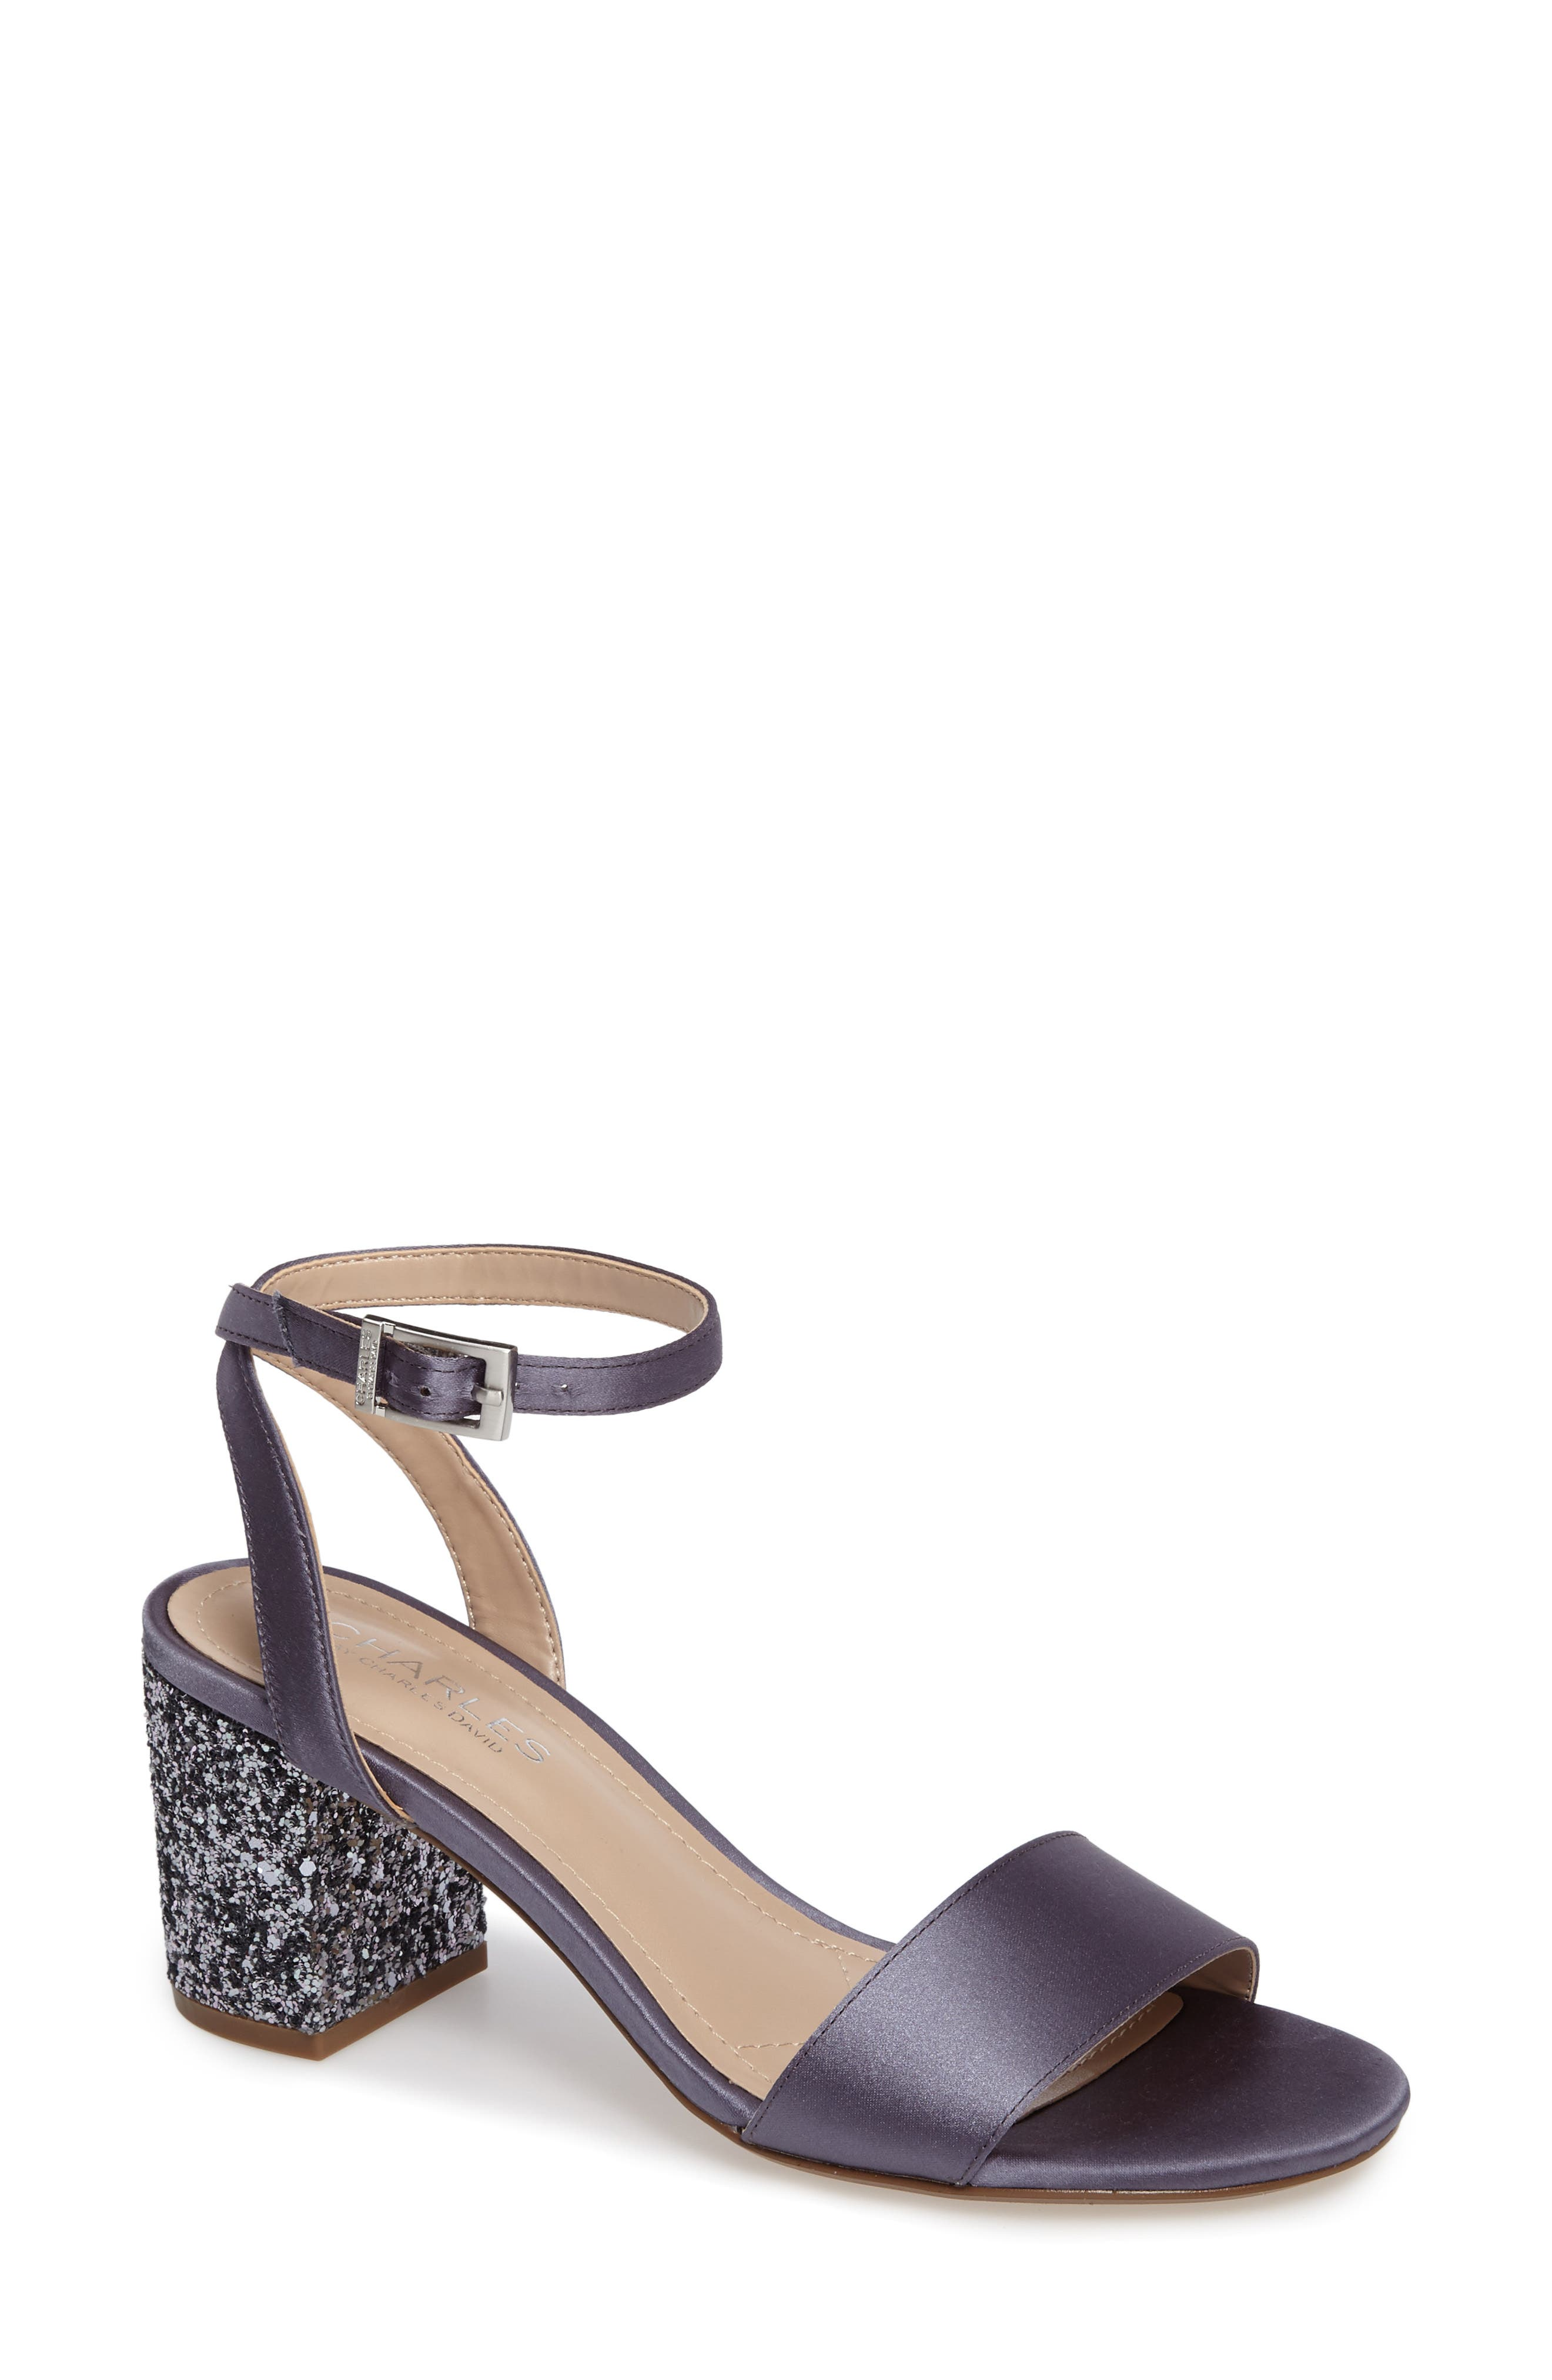 Charles by Charles David Keenan Sandal (Women)